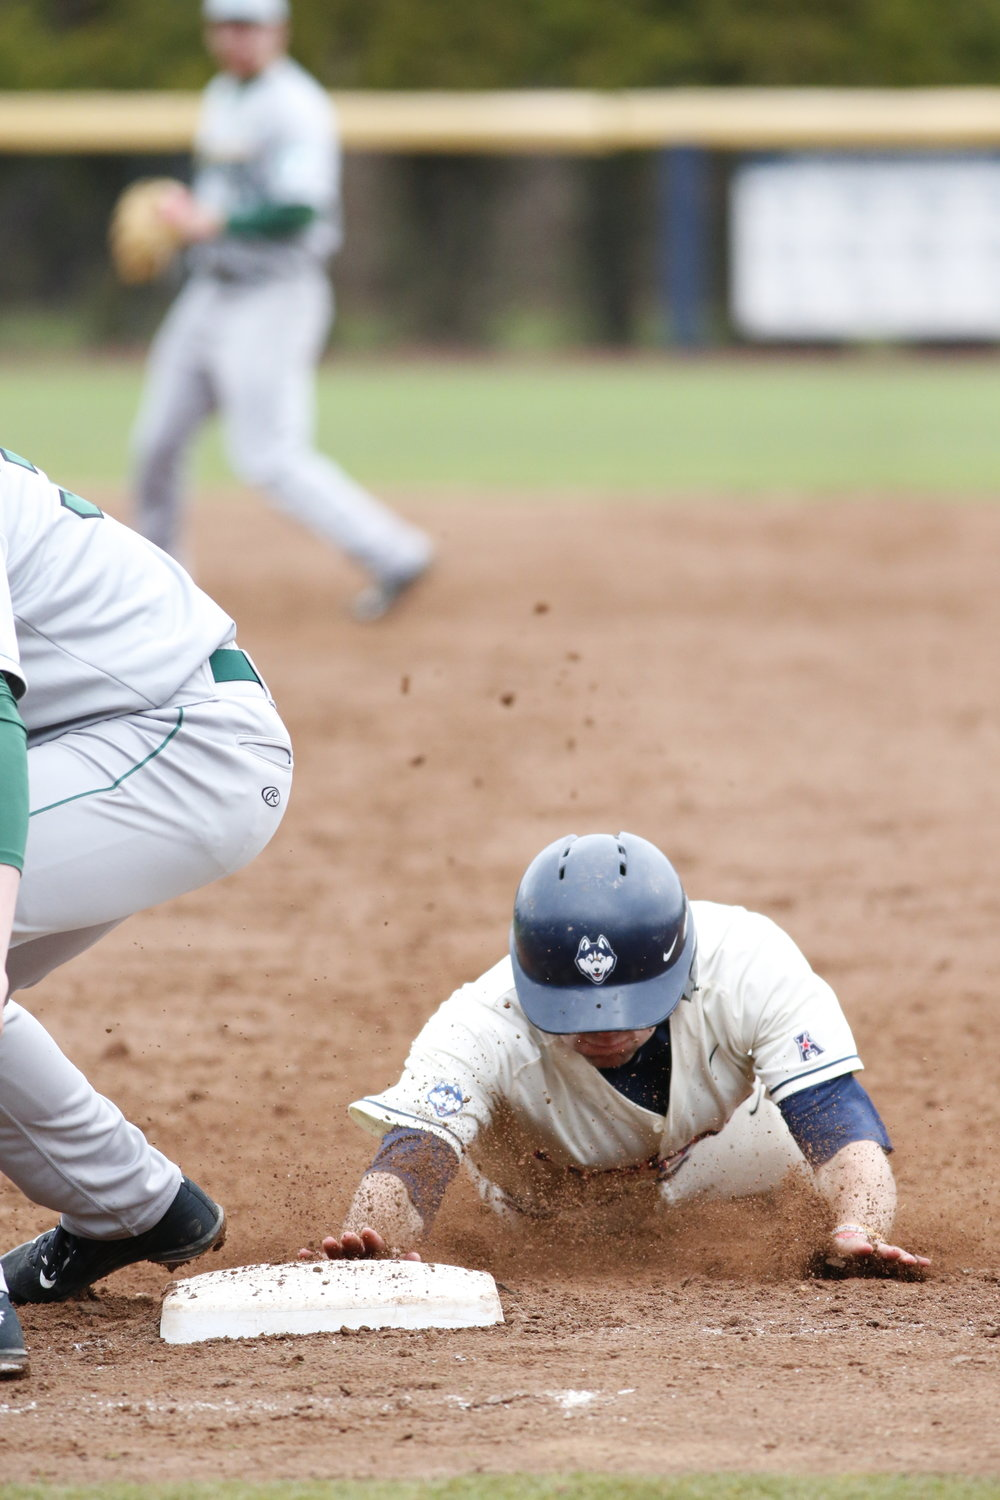 A UConn baseball player slides back into first base during a game against Tulane last season. (Tyler Benton/The Daily Campus)